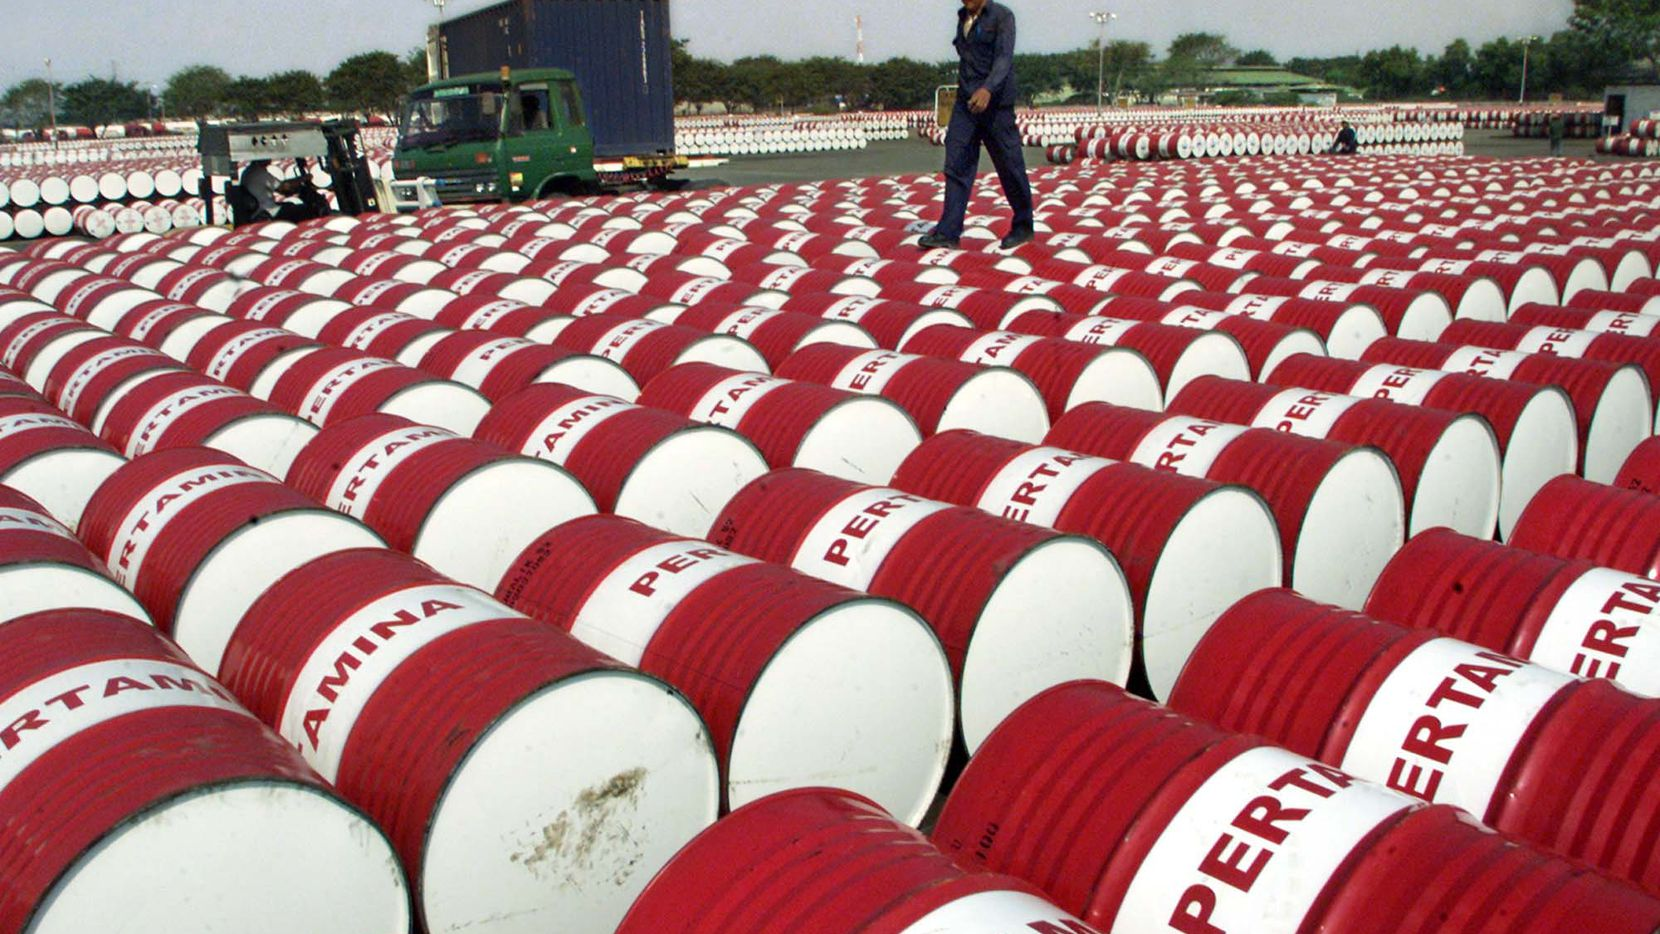 An Indonesian worker walks on barrels of oil at a distribution station of the state-owned oil company Pertamina in Jakarta, Indonesia, in 2005. The question is not if the world will start running out of oil, but when. Top OPEC producers, major oil companies and others in the oil establishment insist crude will be plentiful for at least another generation, but critics argue that OPEC's reserves are overstated, recovery possibilities are limited and the day that demand starts to outstrip supply may soon be upon us.